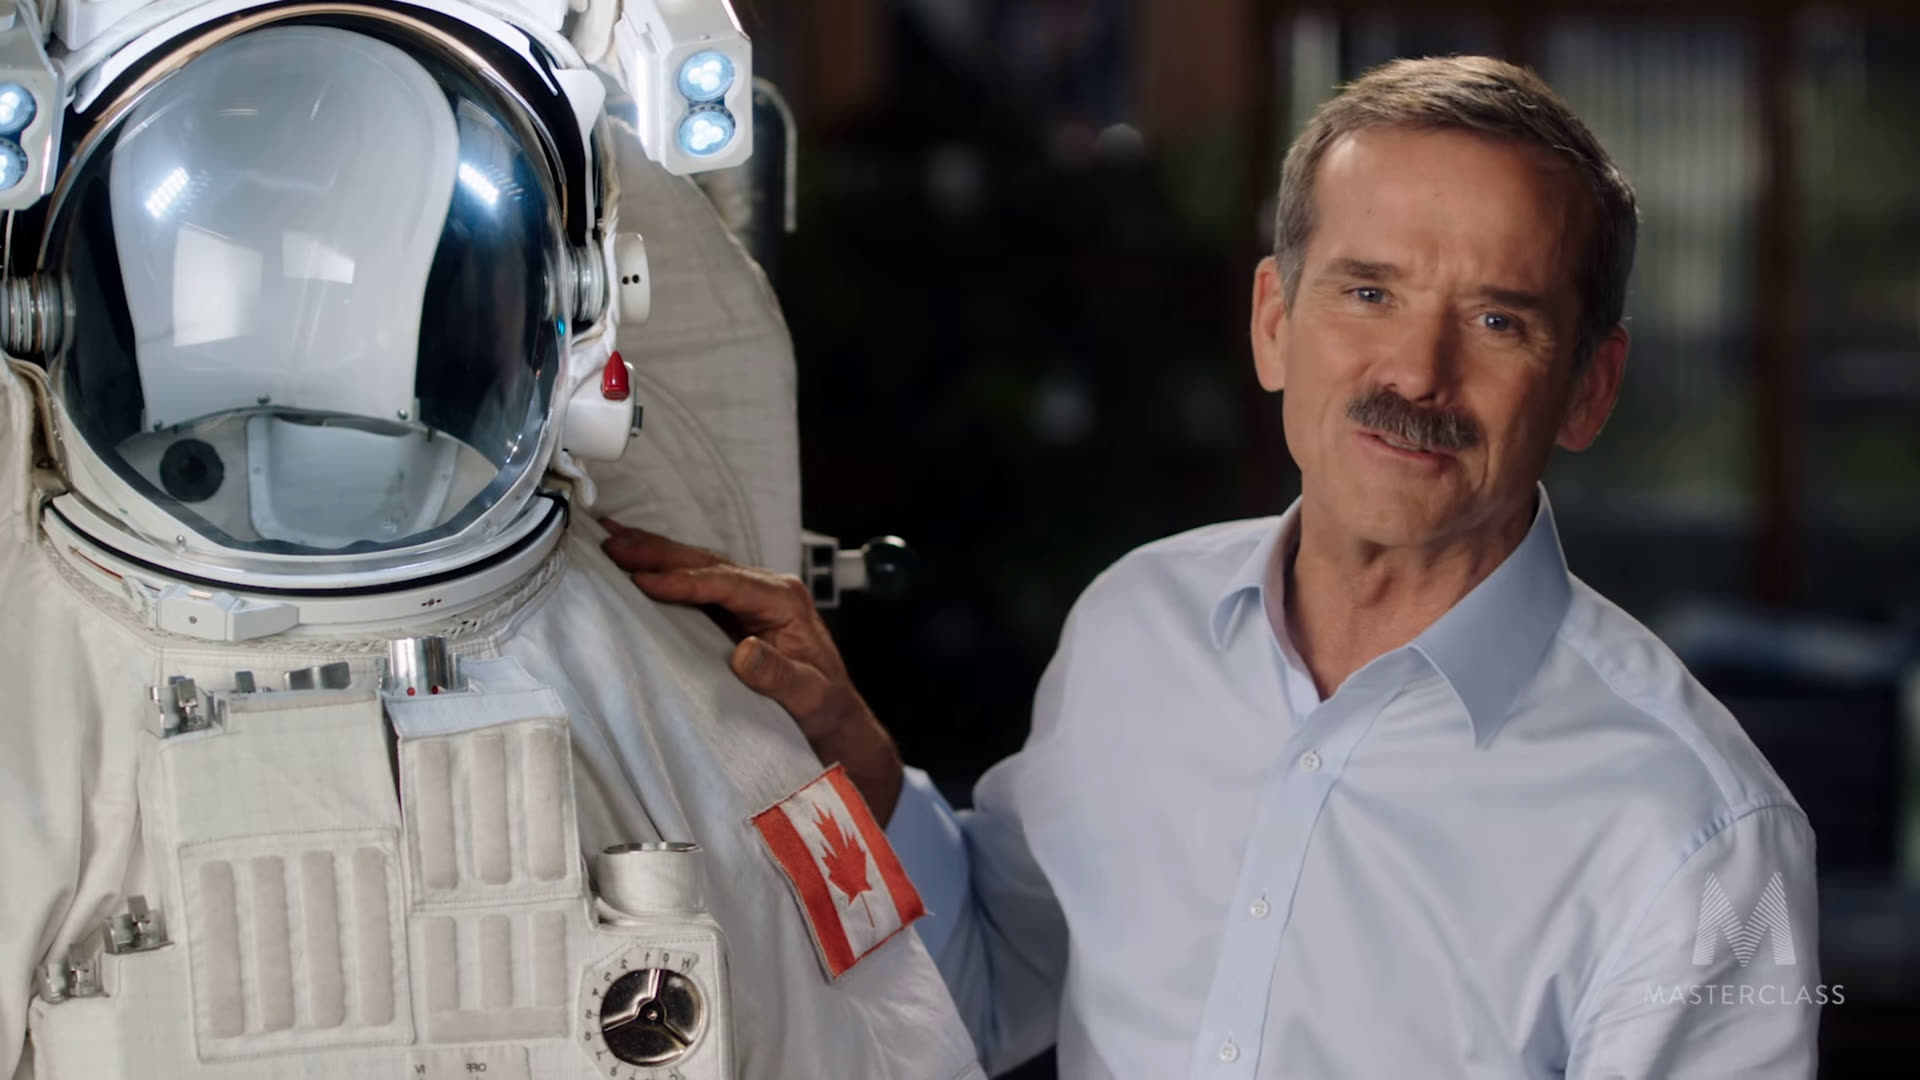 Chris Hadfield on Masterclass: The more you know the less you fear.